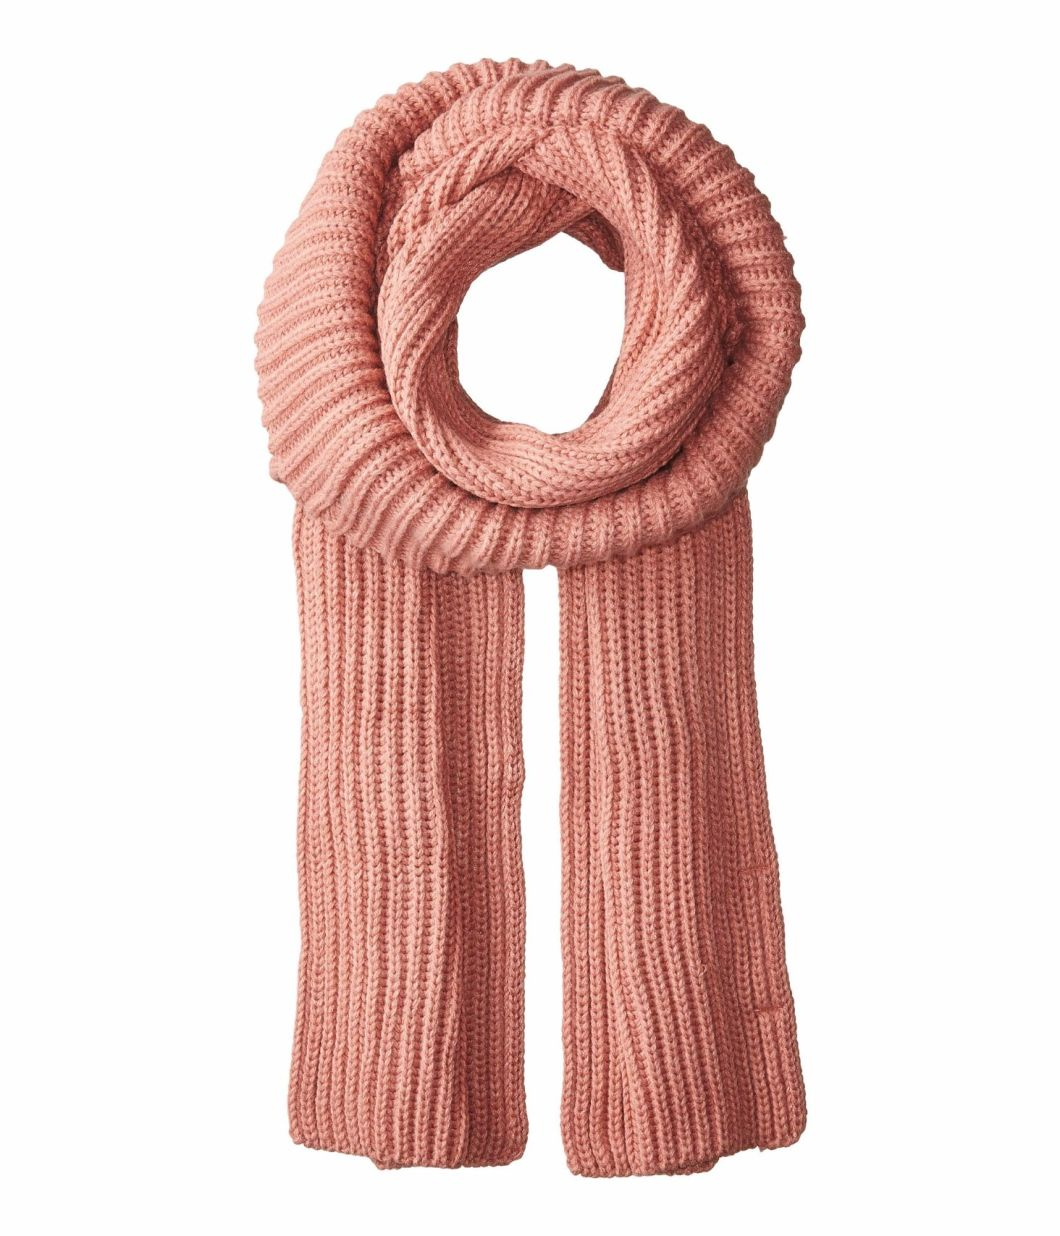 BSCI Audit 100% Acrylic Winter Warm Cable Mock Neck Ribbed Knit Scarf